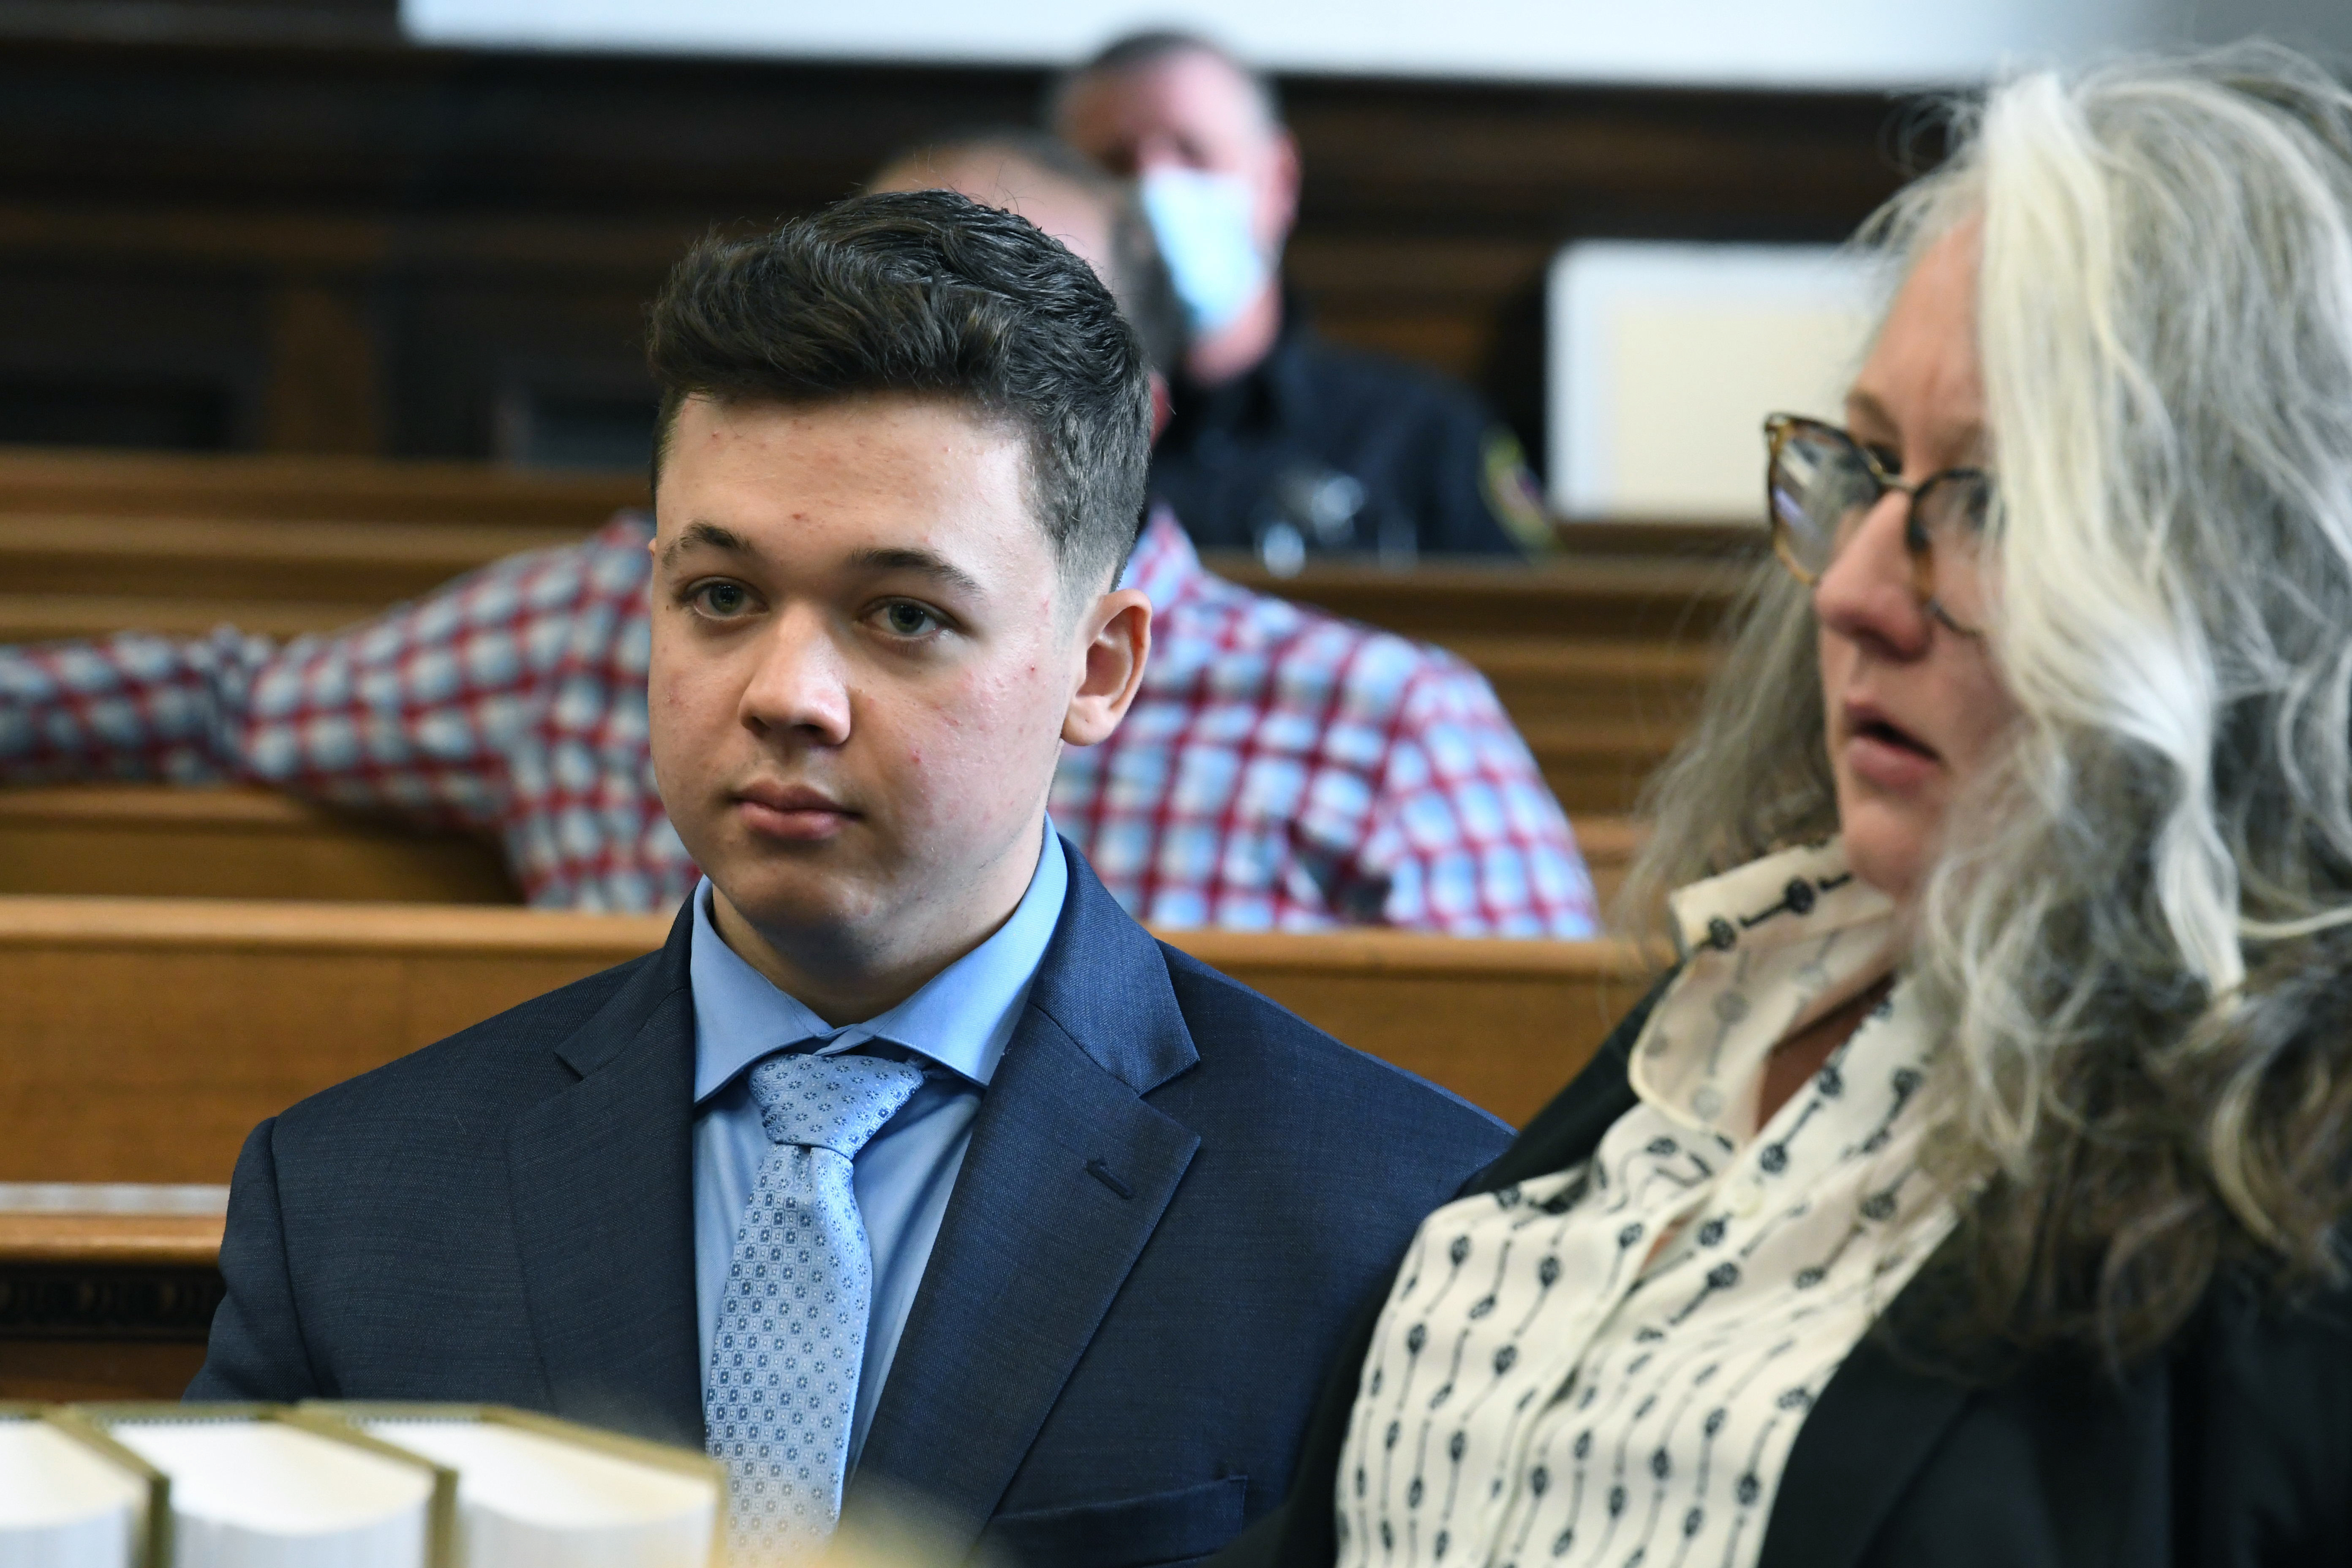 Kyle Rittenhouse attends a pre-trial hearing at the Kenosha County Courthouse in Kenosha, Wis., on Monday, Oct. 25, 2021.